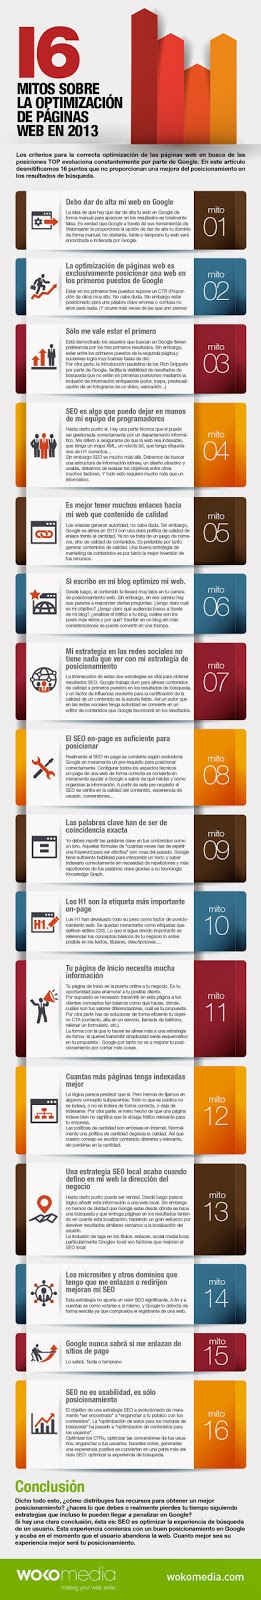 16 mitos sobre la optimización de paginas web en 2013